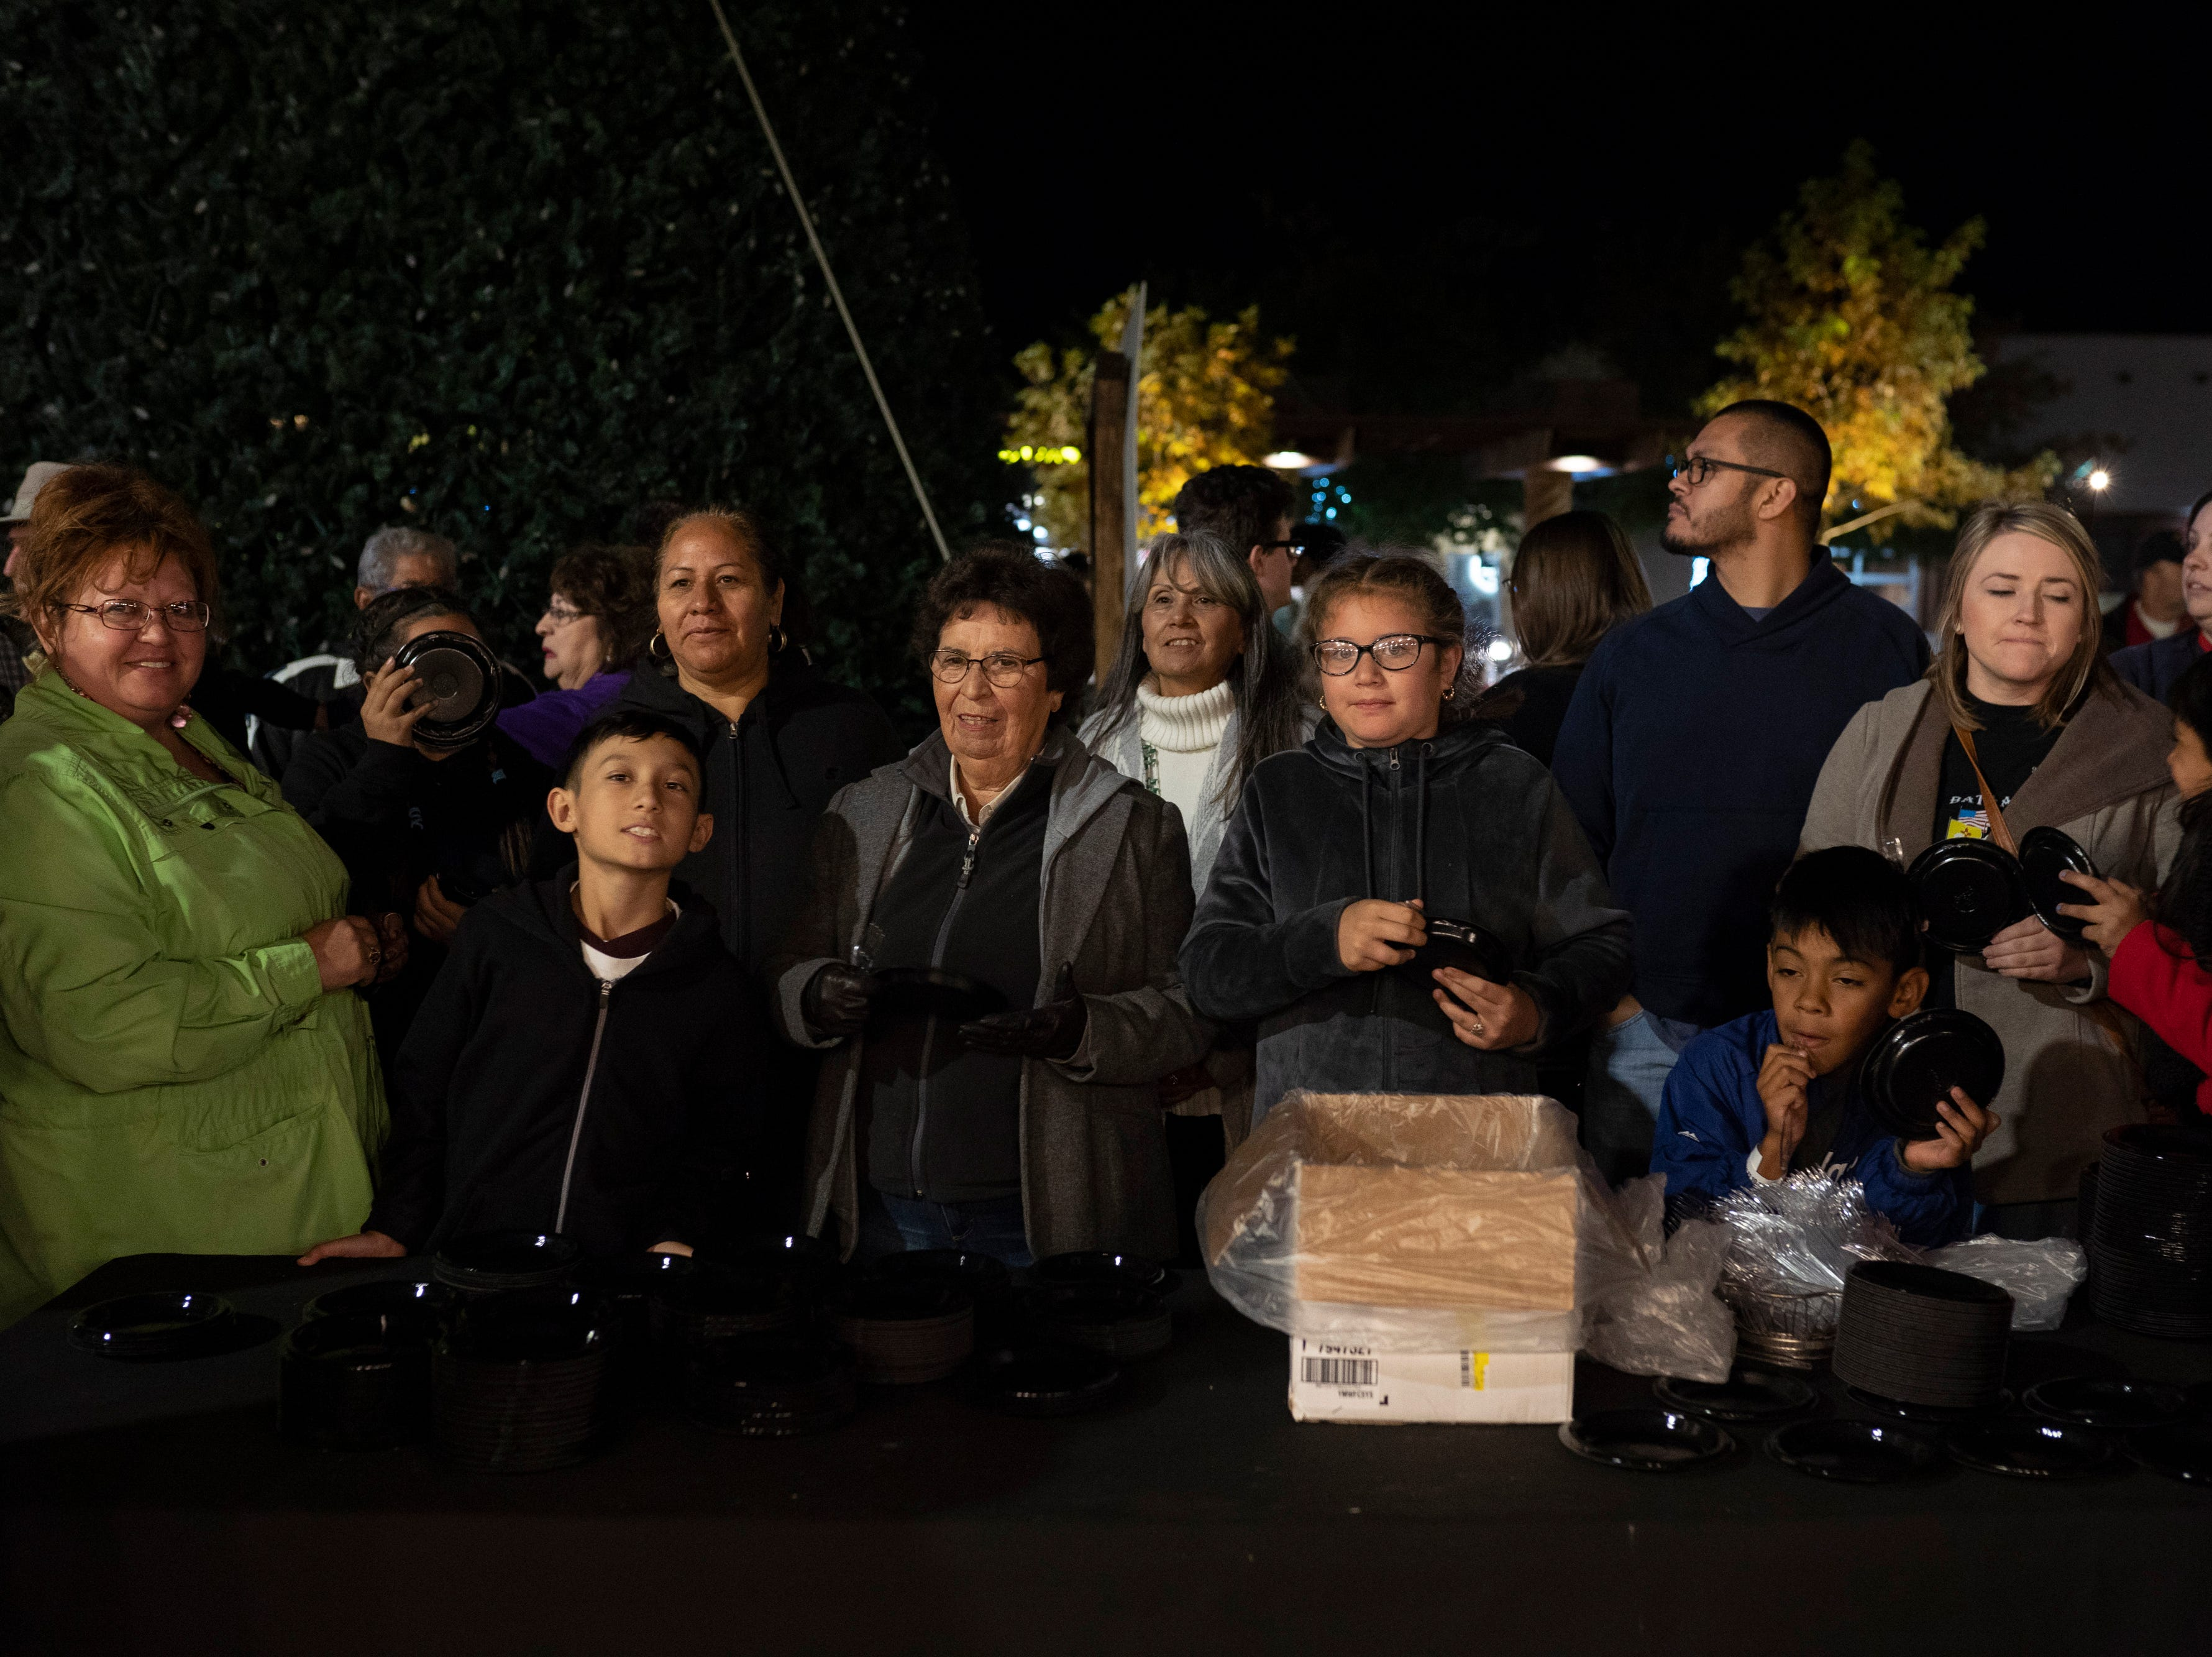 Attendees wait for their chance to eat part of the record-setting serving of nachos at Noche de Nachos. Las Cruces unofficially set the record for world's largest serving of nachos Saturday, Nov. 10, 2018, in downtown Las Cruces.